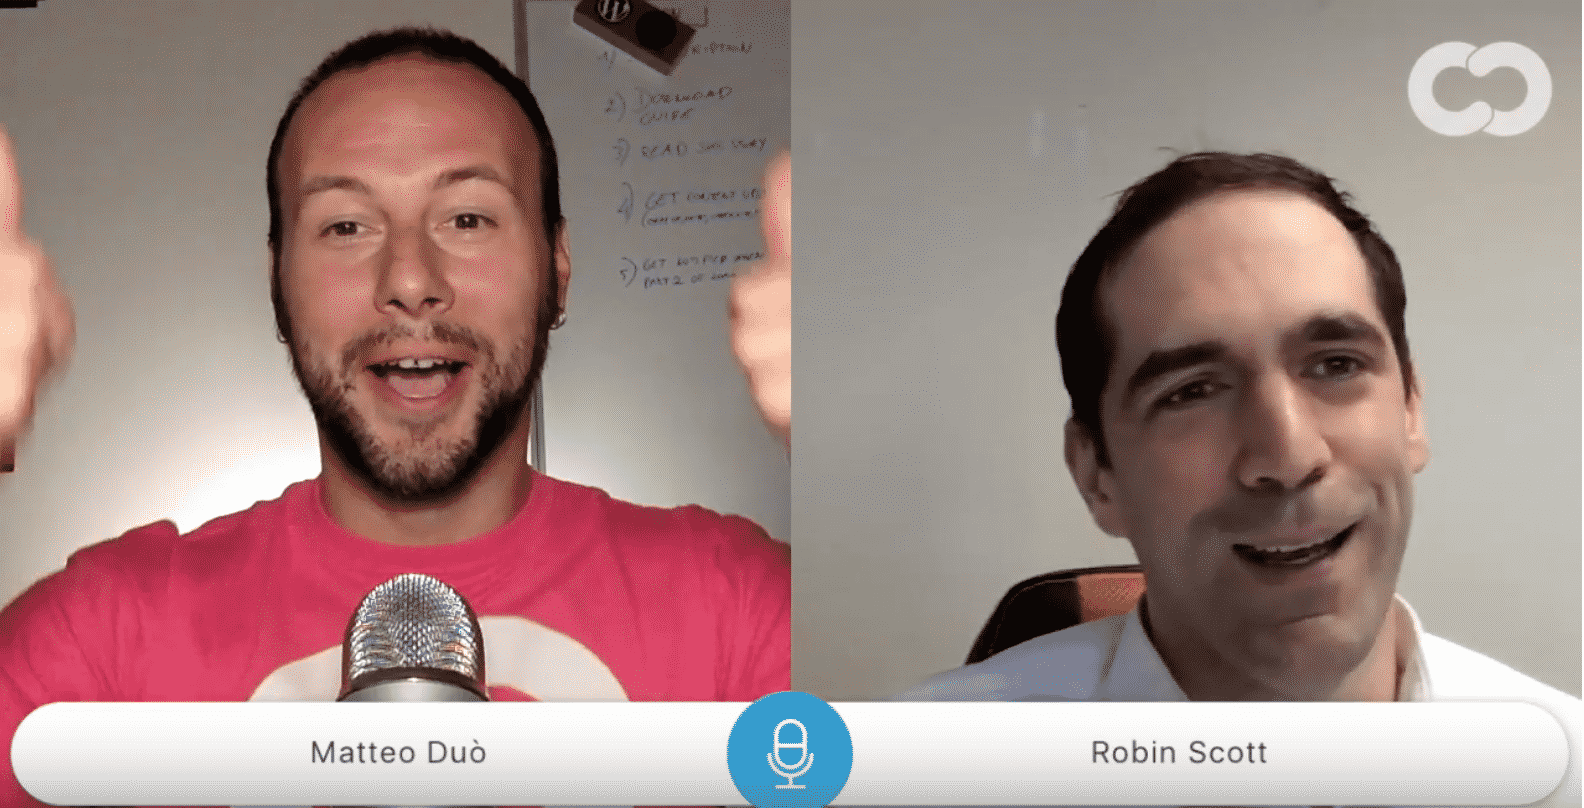 Talking with Robin Scott, from Silicon Dales